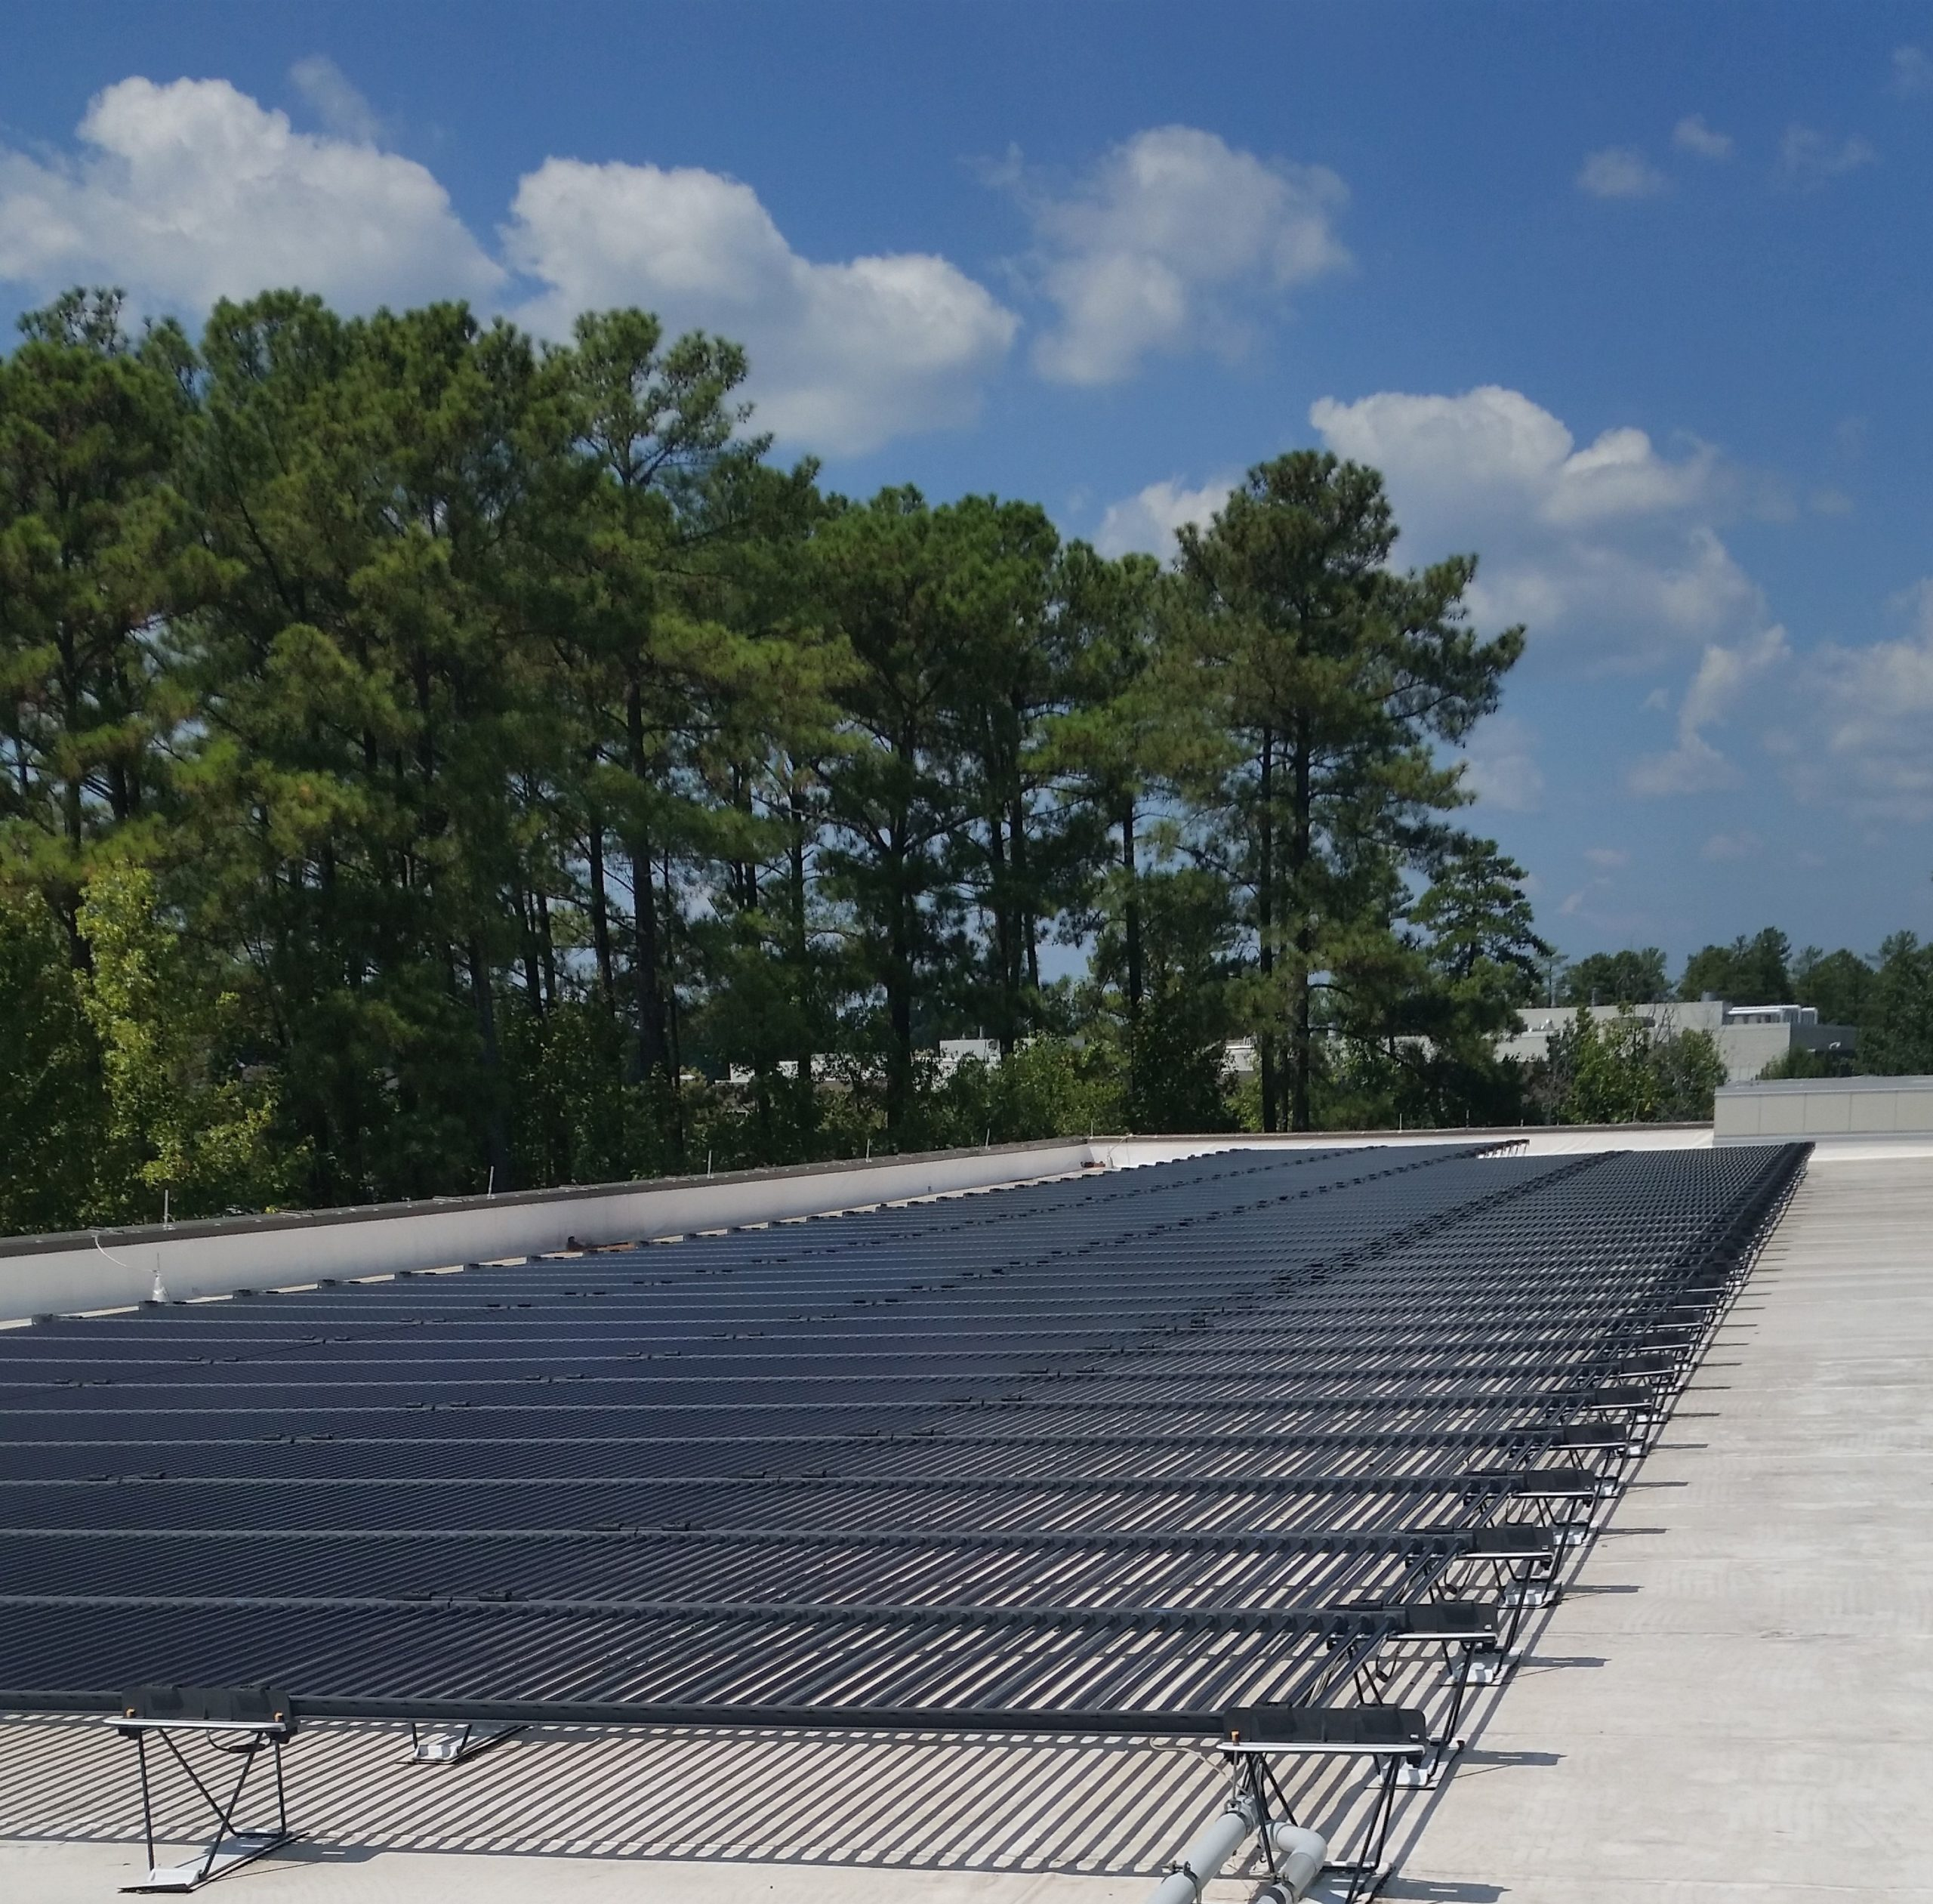 Cisco maintains a rooftop solar PV system at the RTP campus